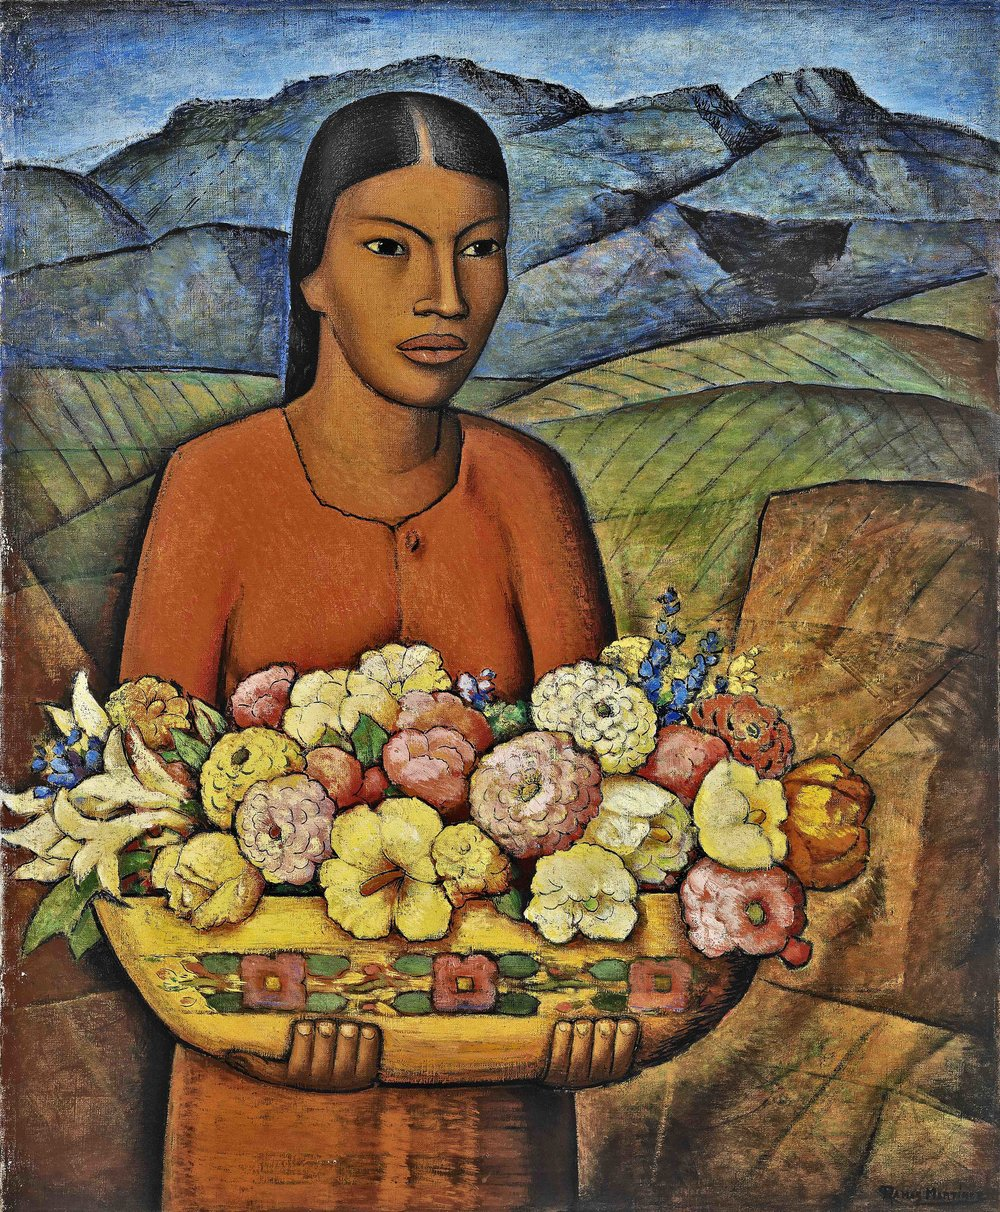 Florida Mexicana  ca. 1936 oil on canvas / óleo sobre tela 36 x 30 inches / 91.4 x 76.2 centímetros Private collection